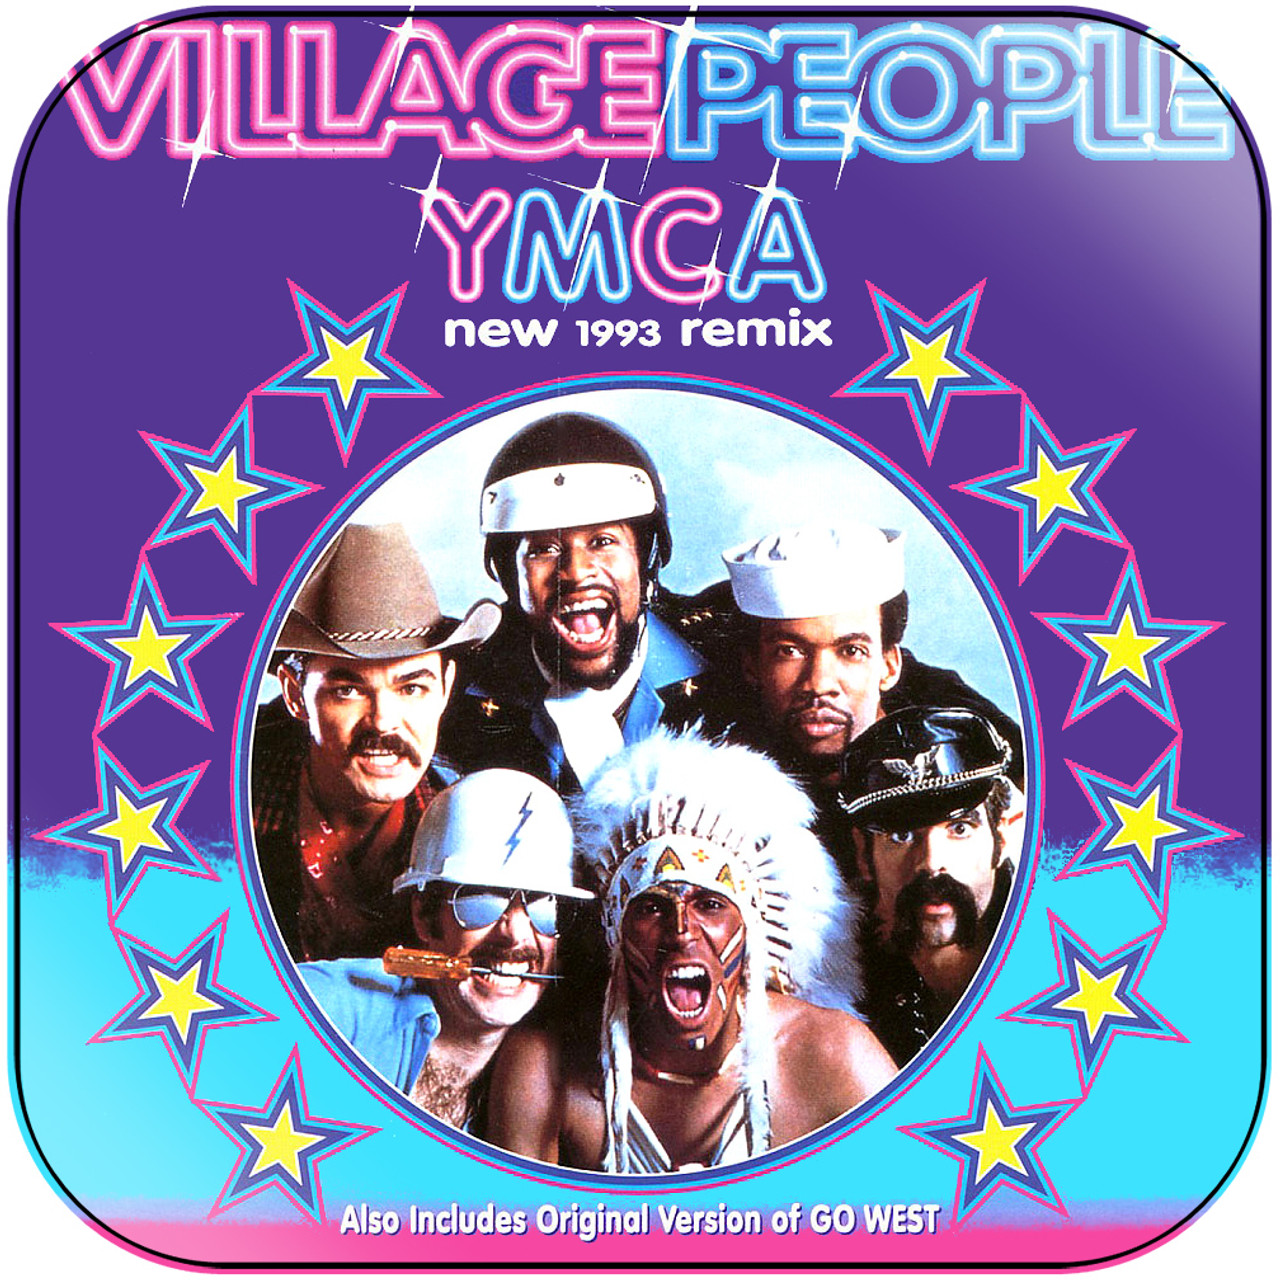 Village people ymca album cover sticker